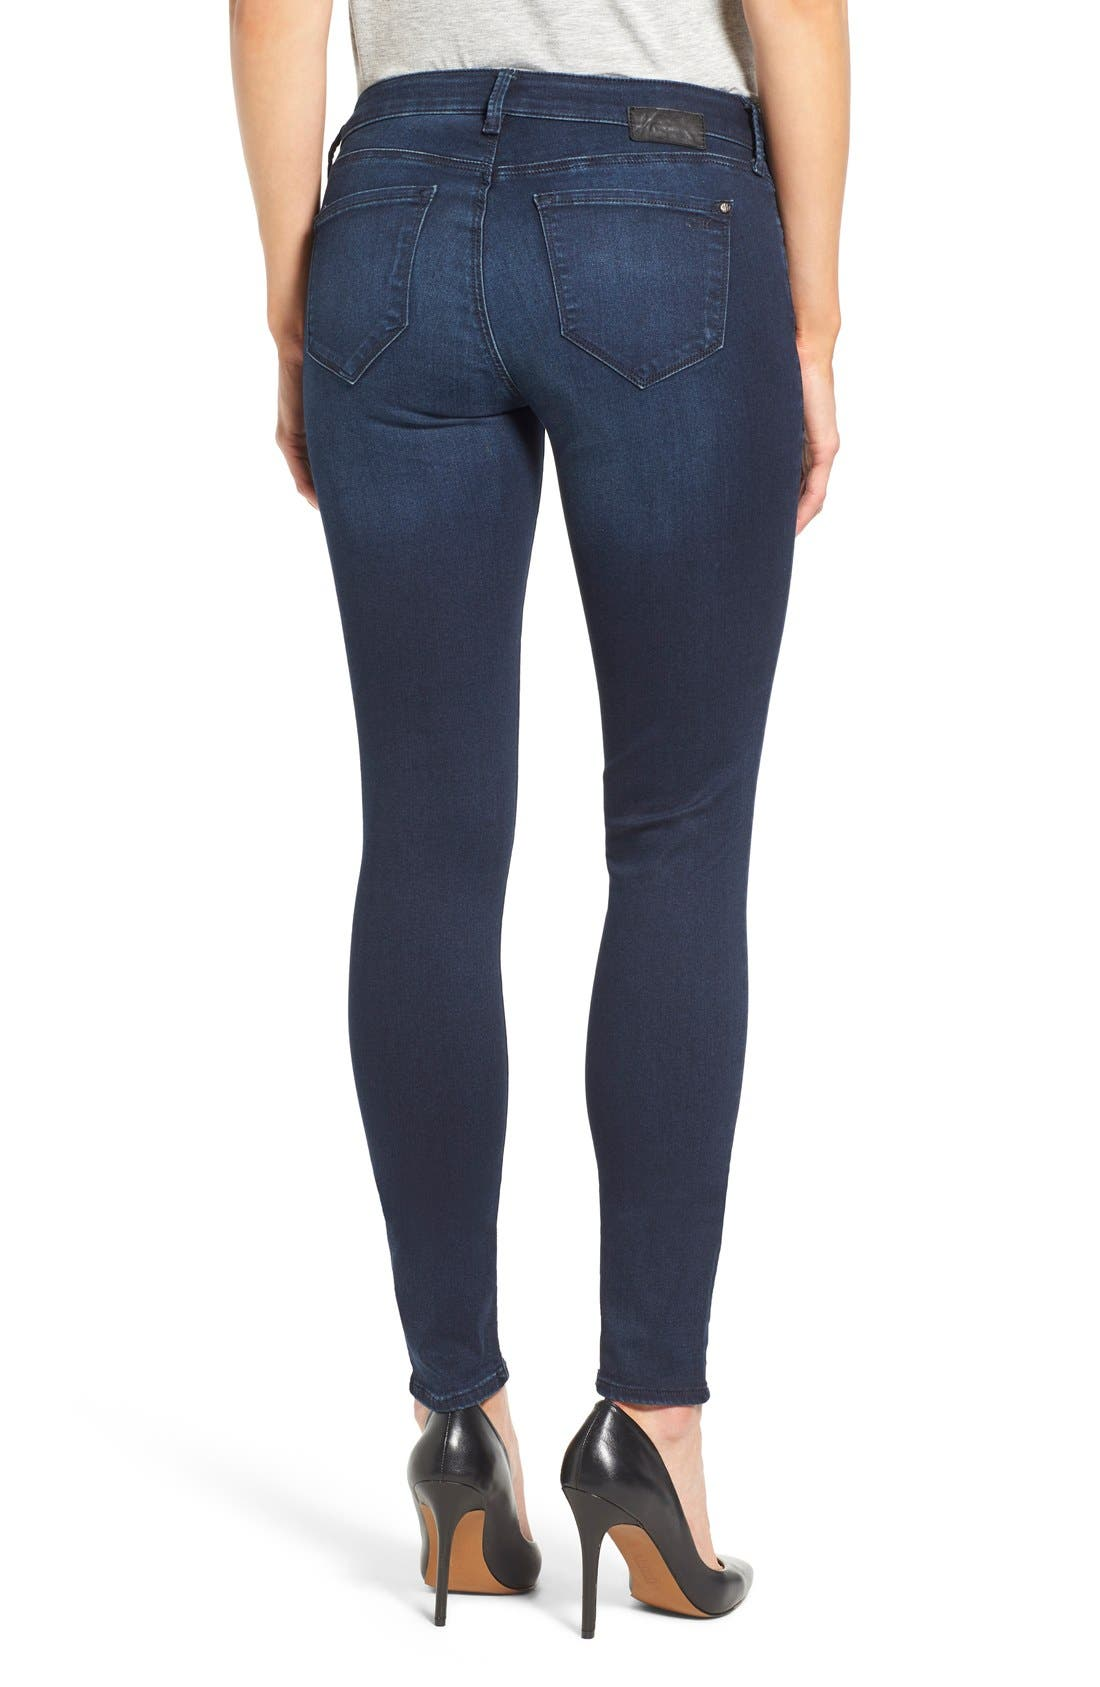 'Adriana' Stretch Skinny Jeans,                             Alternate thumbnail 2, color,                             Dark Blue